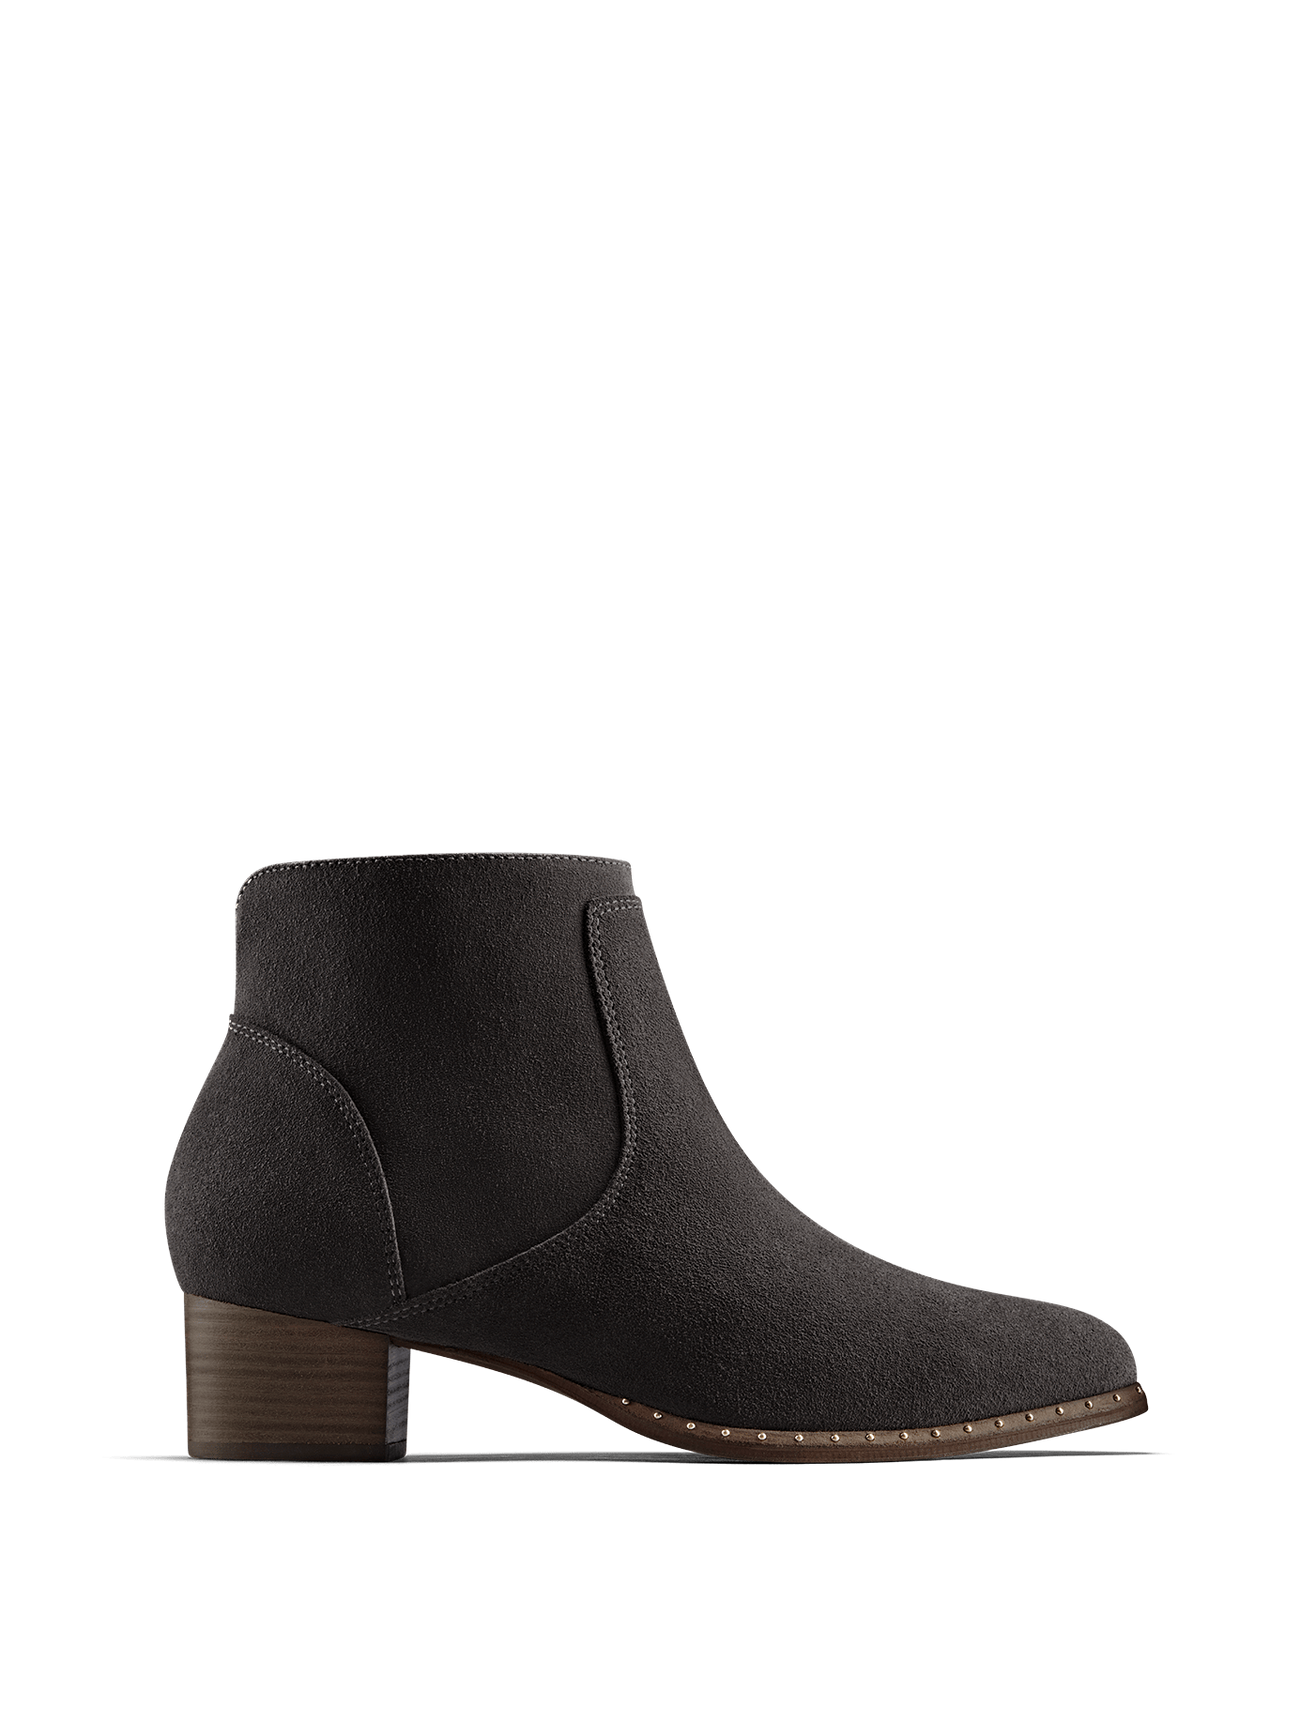 Ludlow, our versatile everyday grey suede ankle boot with stud detailing.